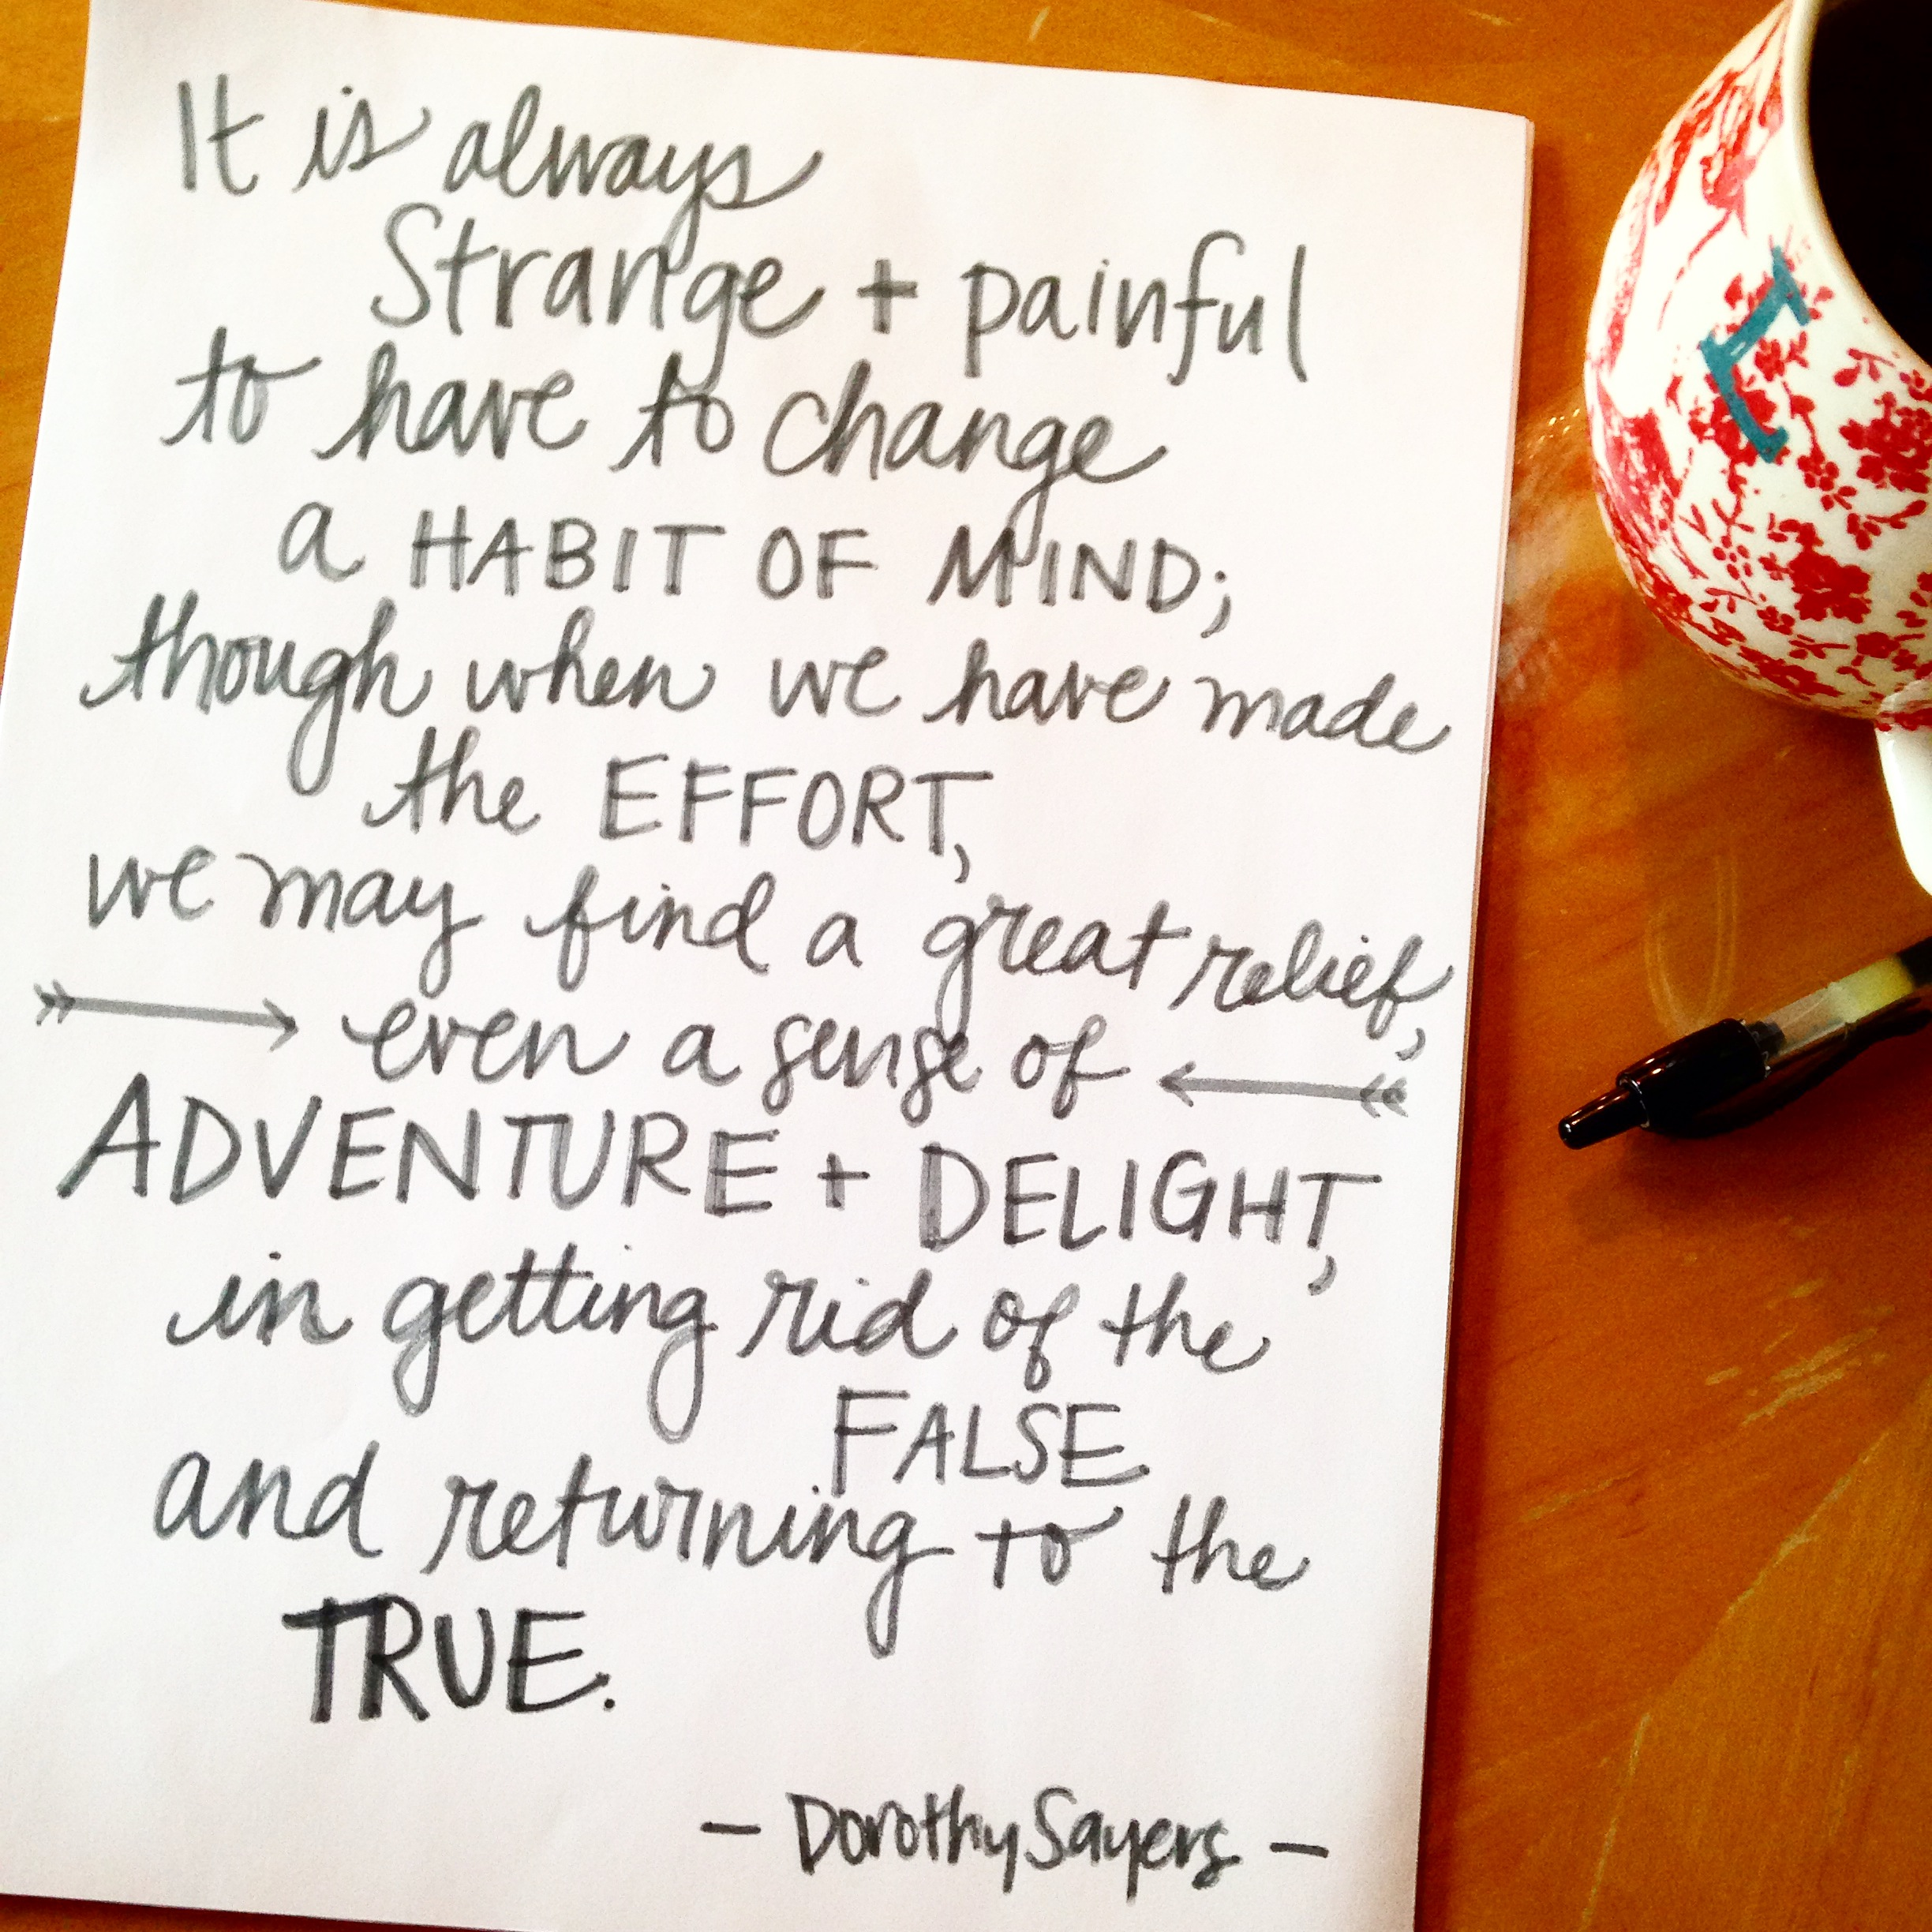 There is adventure and delight in throwing out your crappy ways of thinking and replacing it with truth. | lucyflint.com